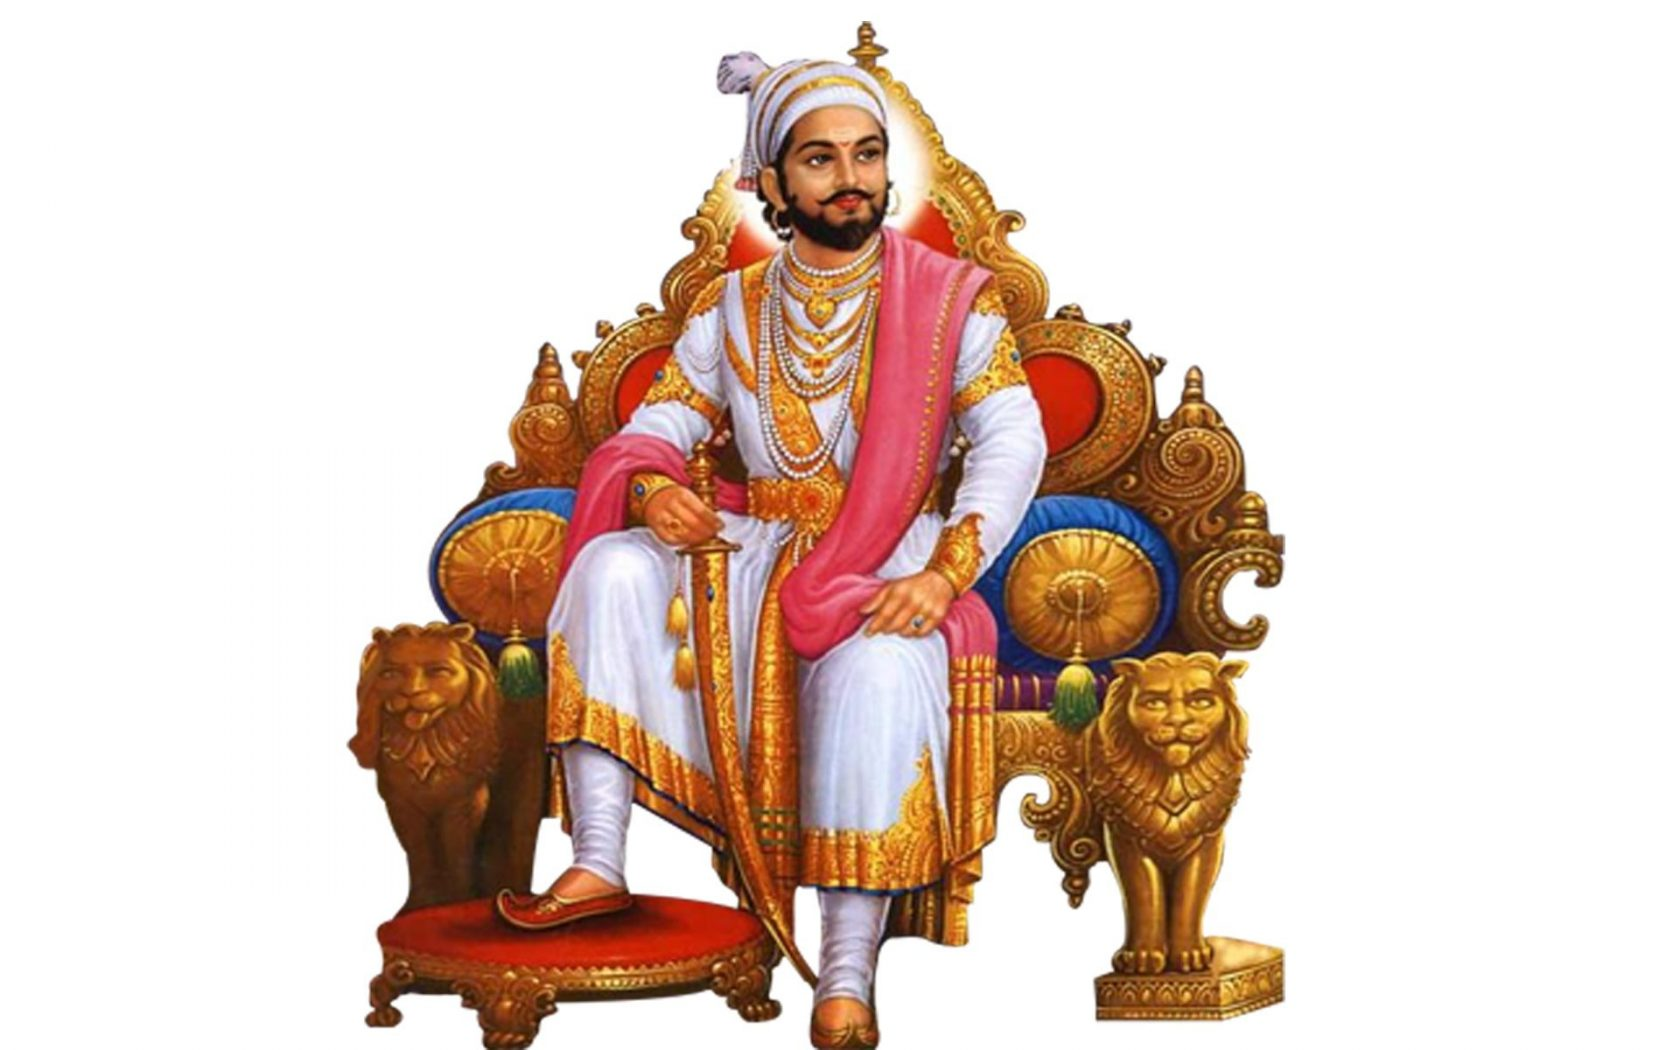 shivaji maharaj wallpapers desktop hd wallpapers hd backgroundstumblr backgrounds